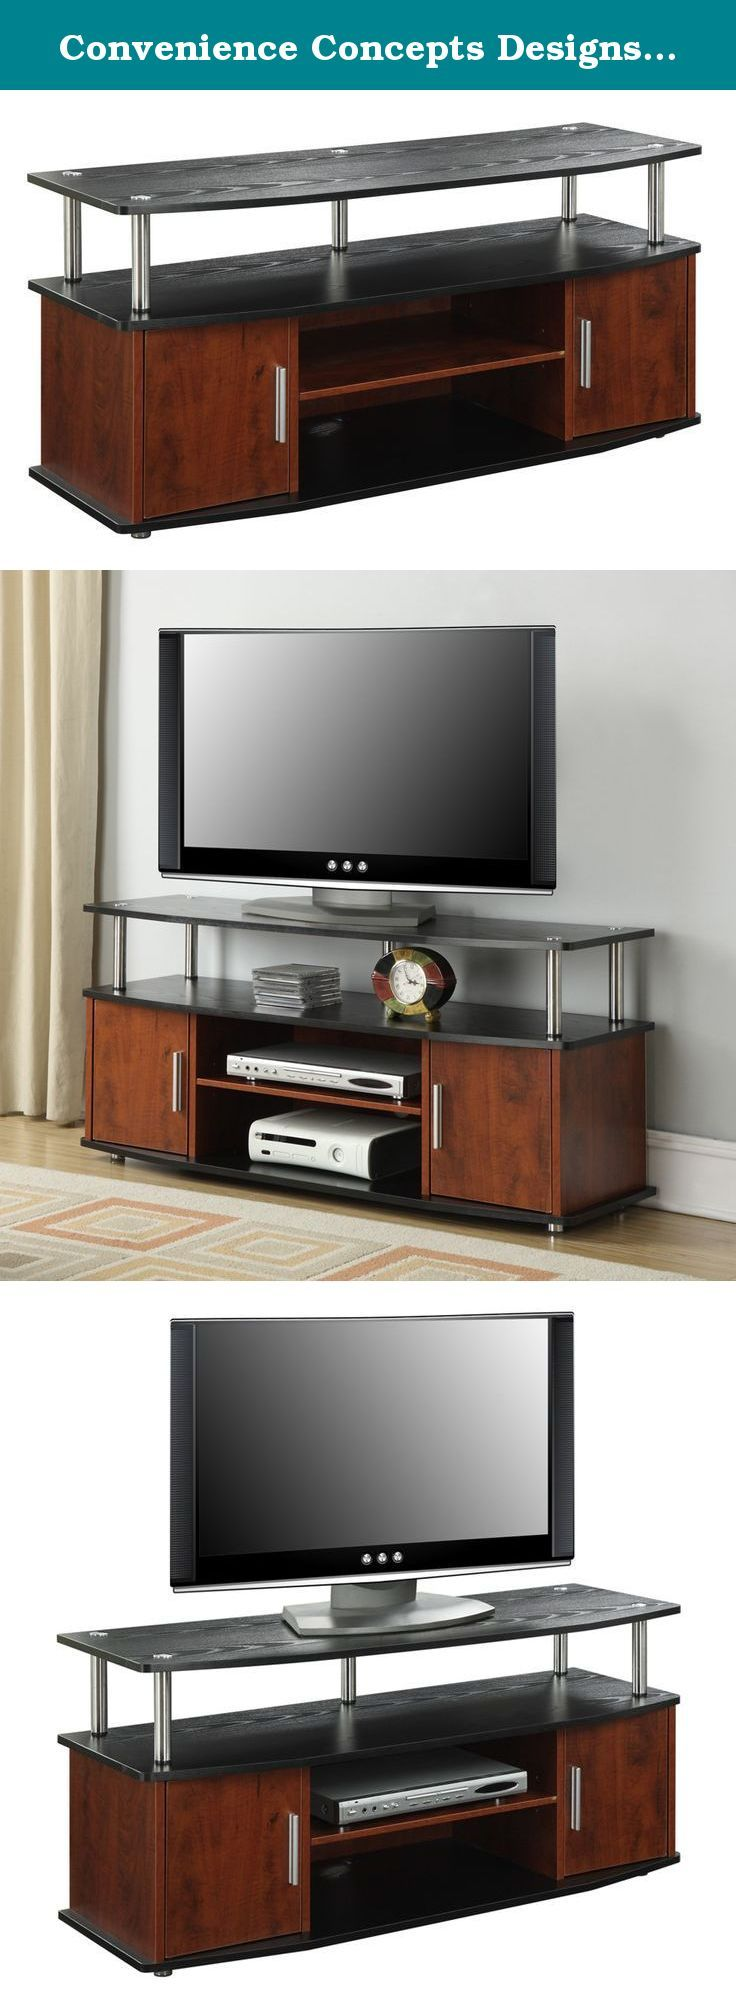 Convenience Concepts Designs2Go Monterey TV Stand, Cherry Black. The Designs2Go Monterey TV Stand in a rich two tone Black and Cherry wood grain finish is a great way to add a touch of elegance to your home in a modern way. Featuring two enclosed cabinets for concealed storage and three open shelves that make cable management a breeze. The Monterey TV stand is easy on the eyes while providing plenty of space for all of your media components.